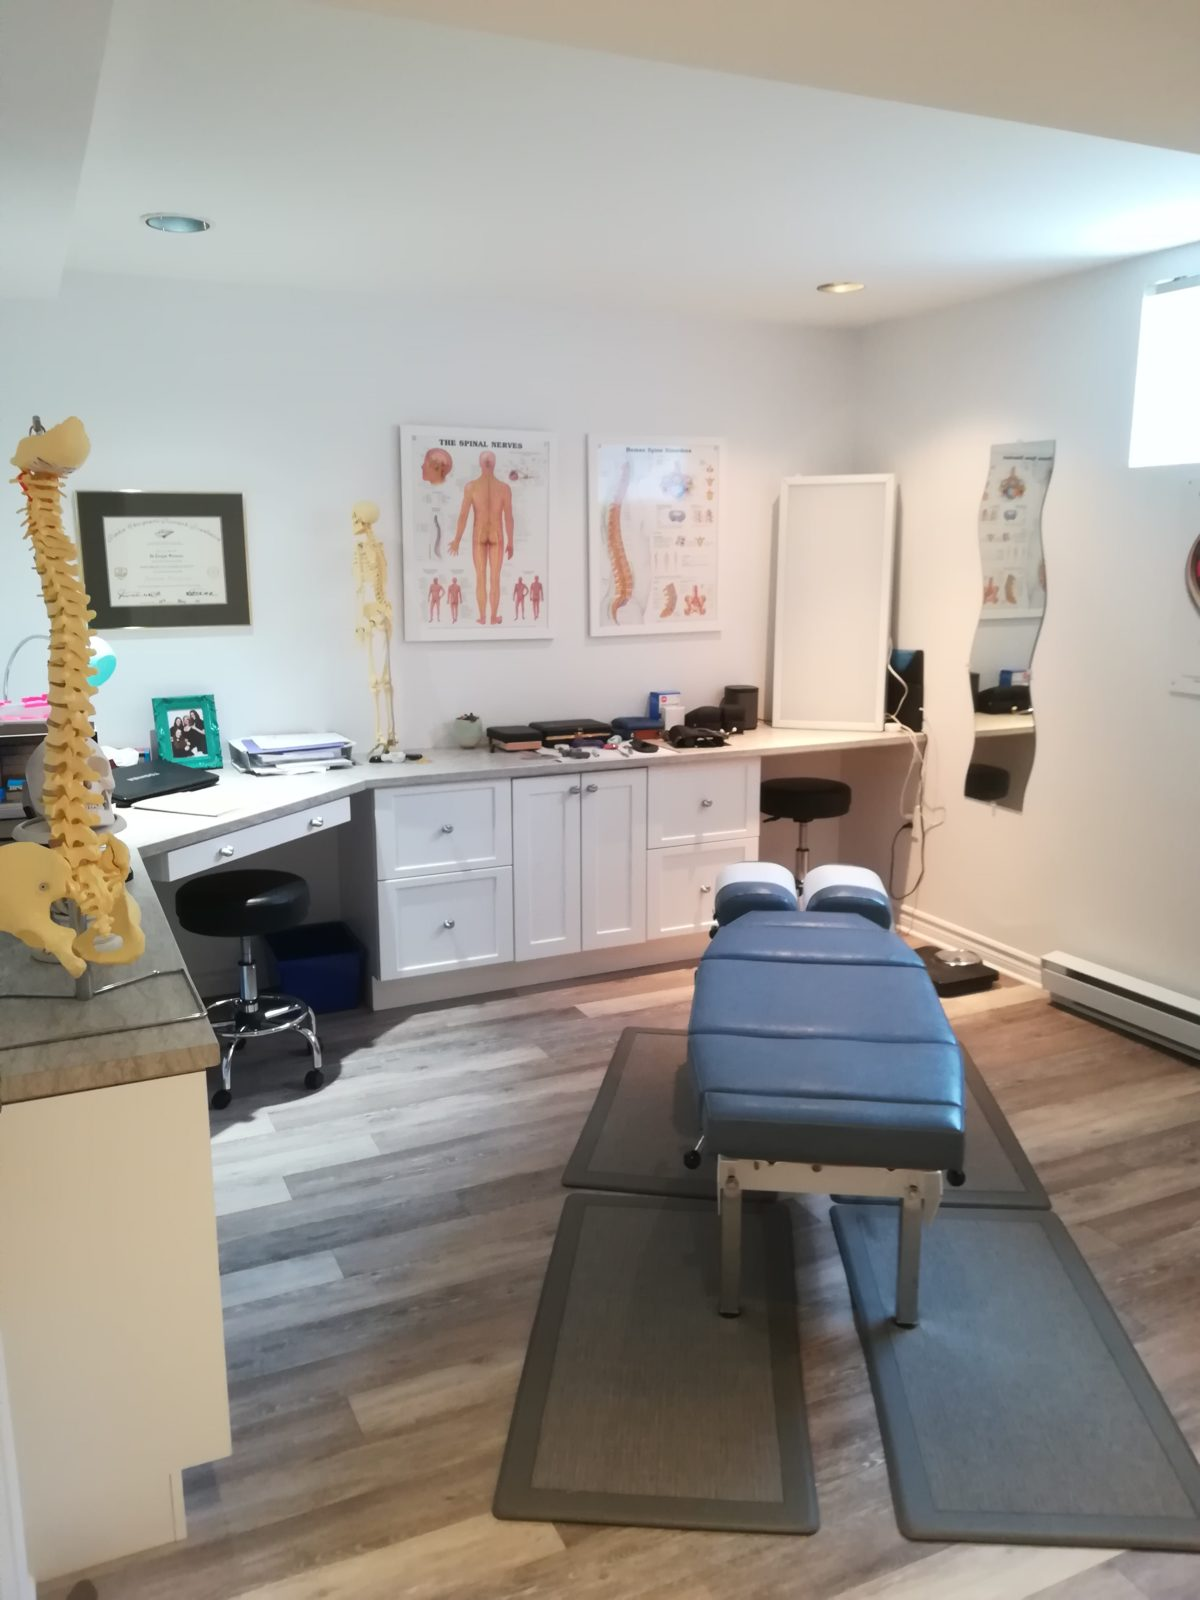 What to expect at your first chiropractic visit